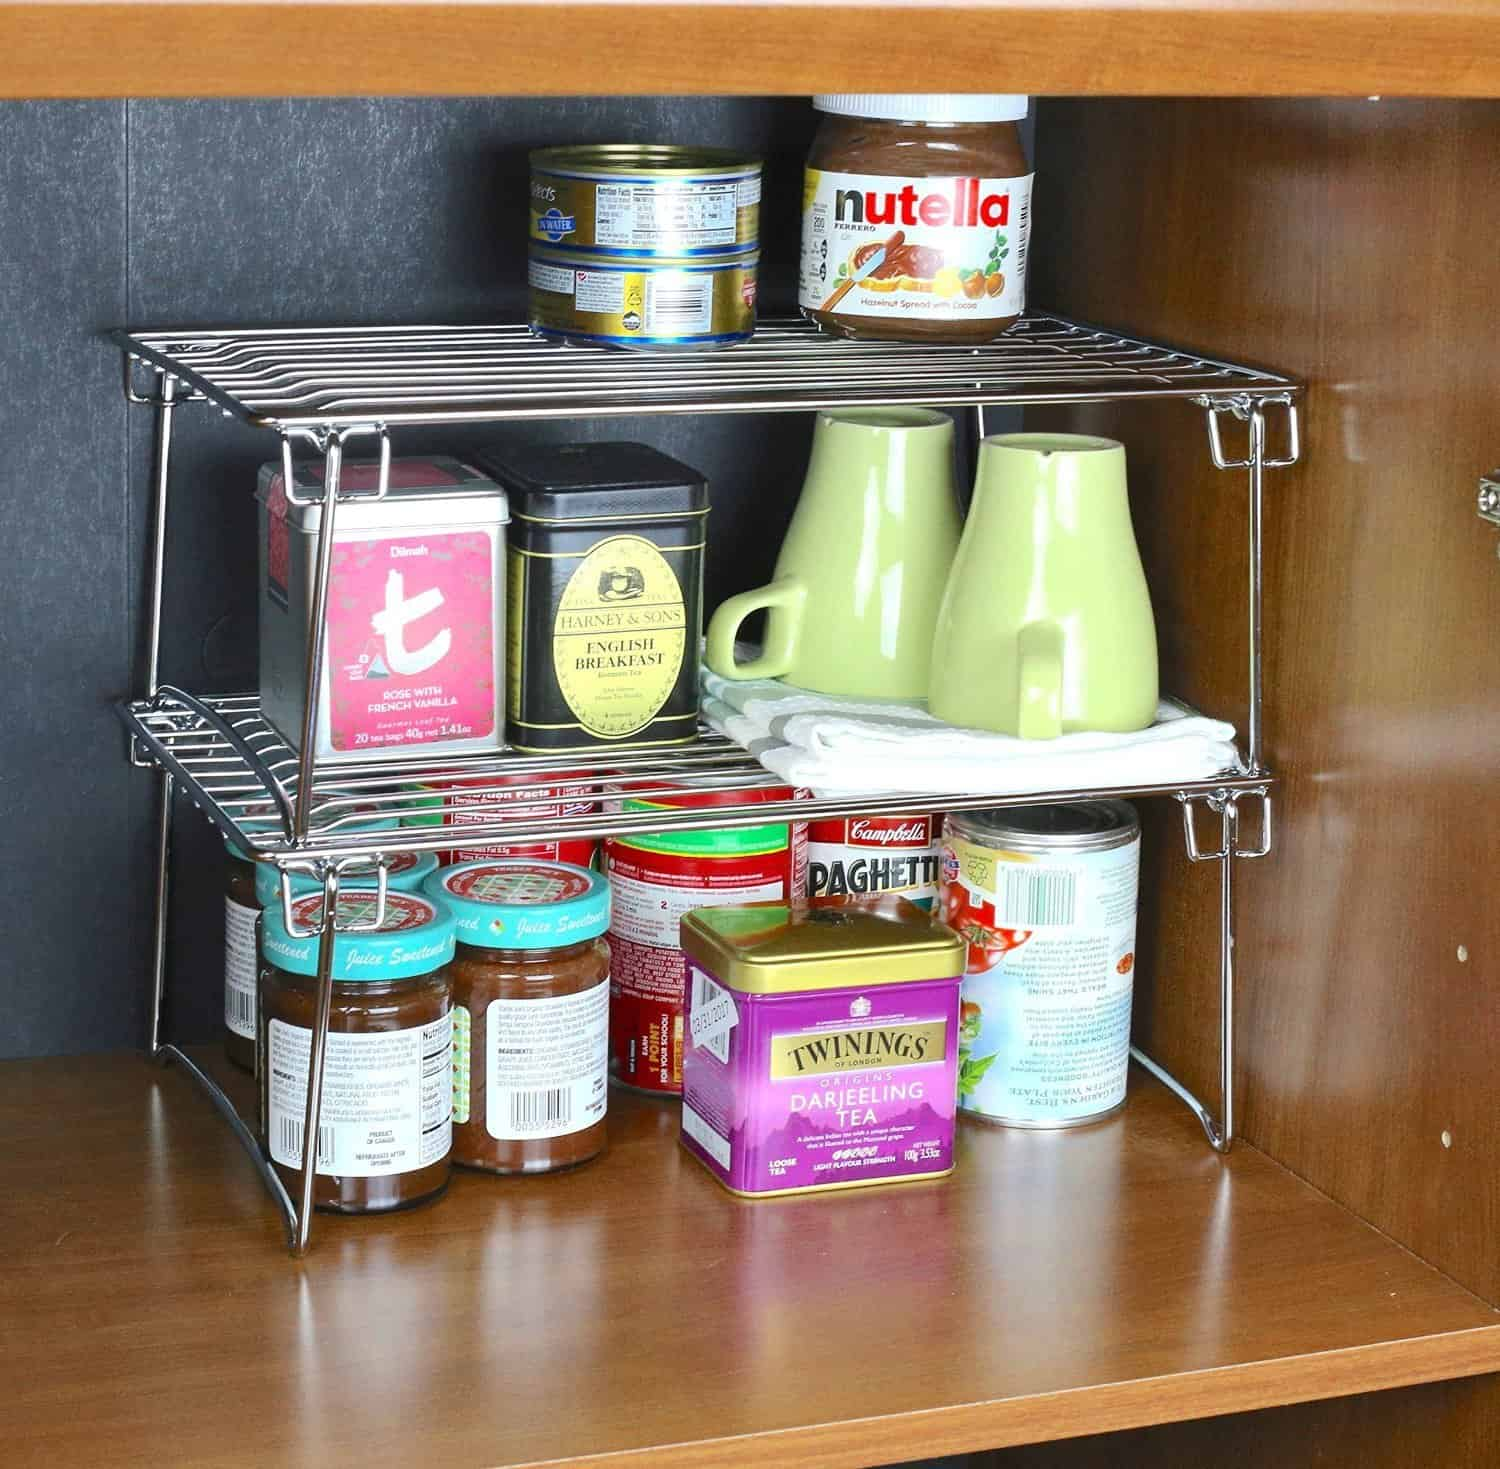 Kitchen Pantry Cabinet Organization Ideas Plate Rack Shelf: 15 Mind-Blowing Kitchen Cabinet Organization Ideas You'll